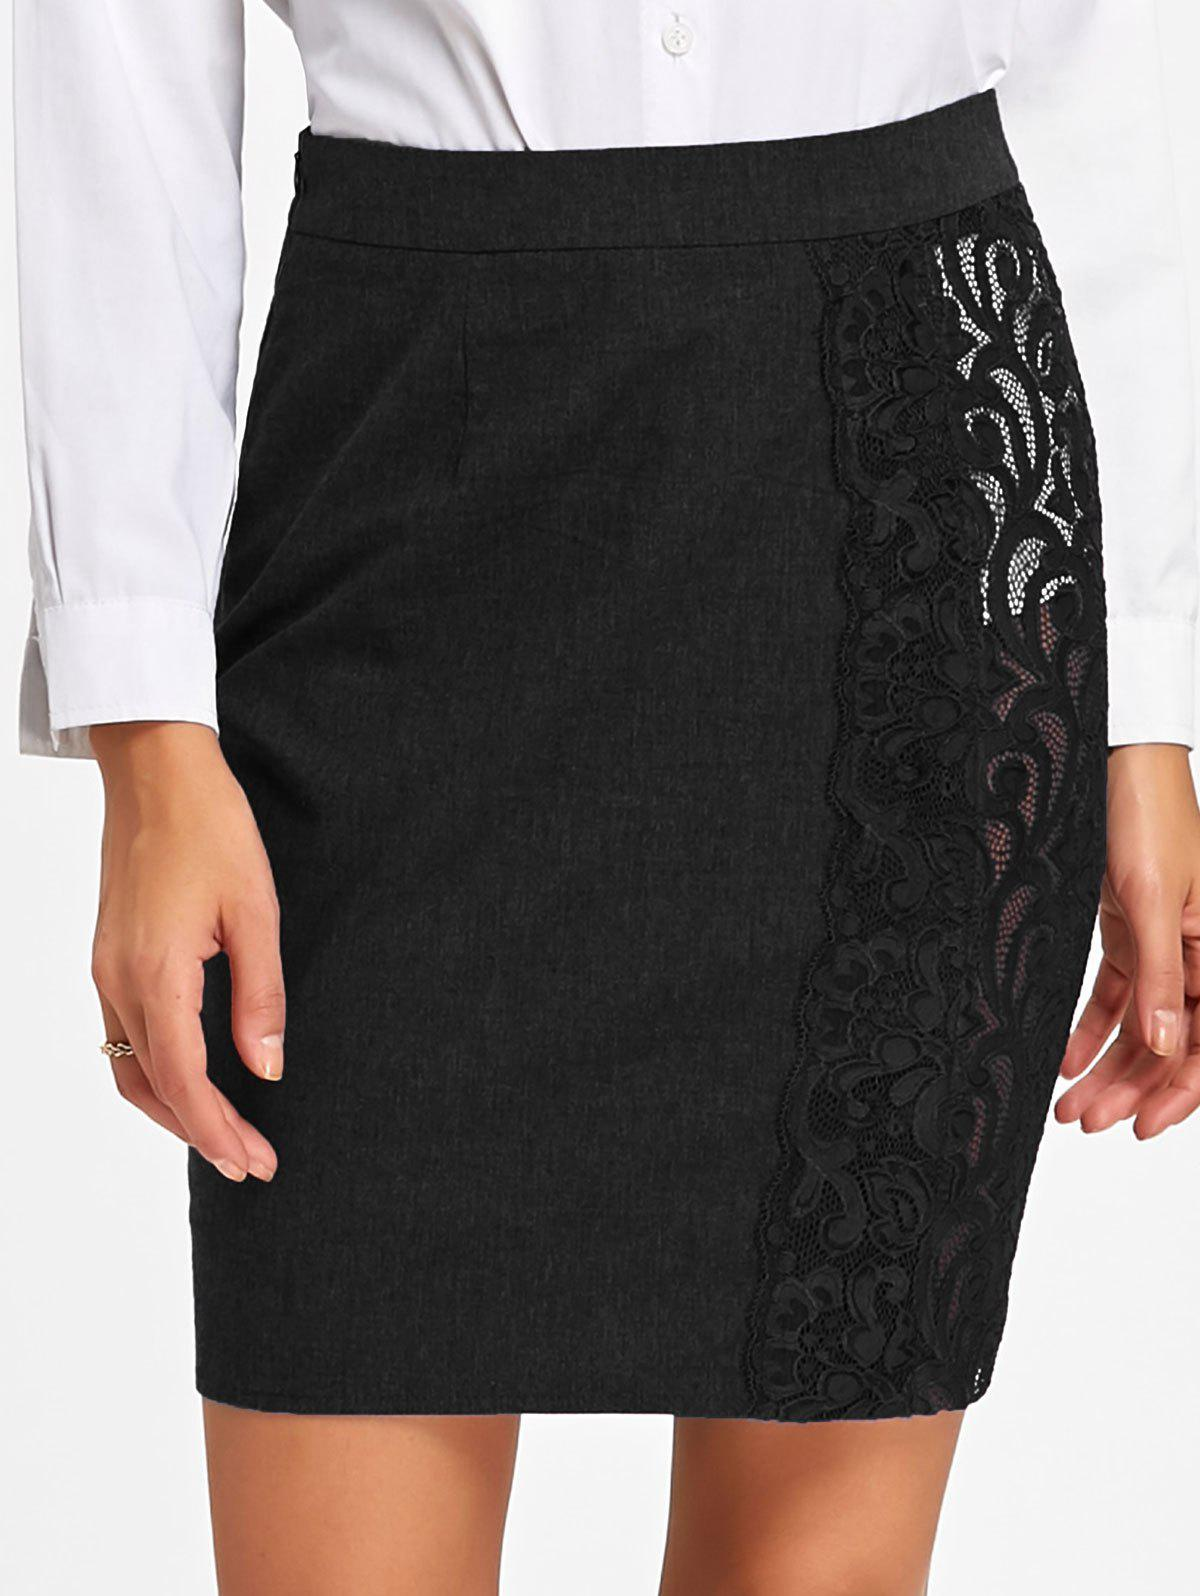 Slim Fit Lace Trim Skirt - BLACK M